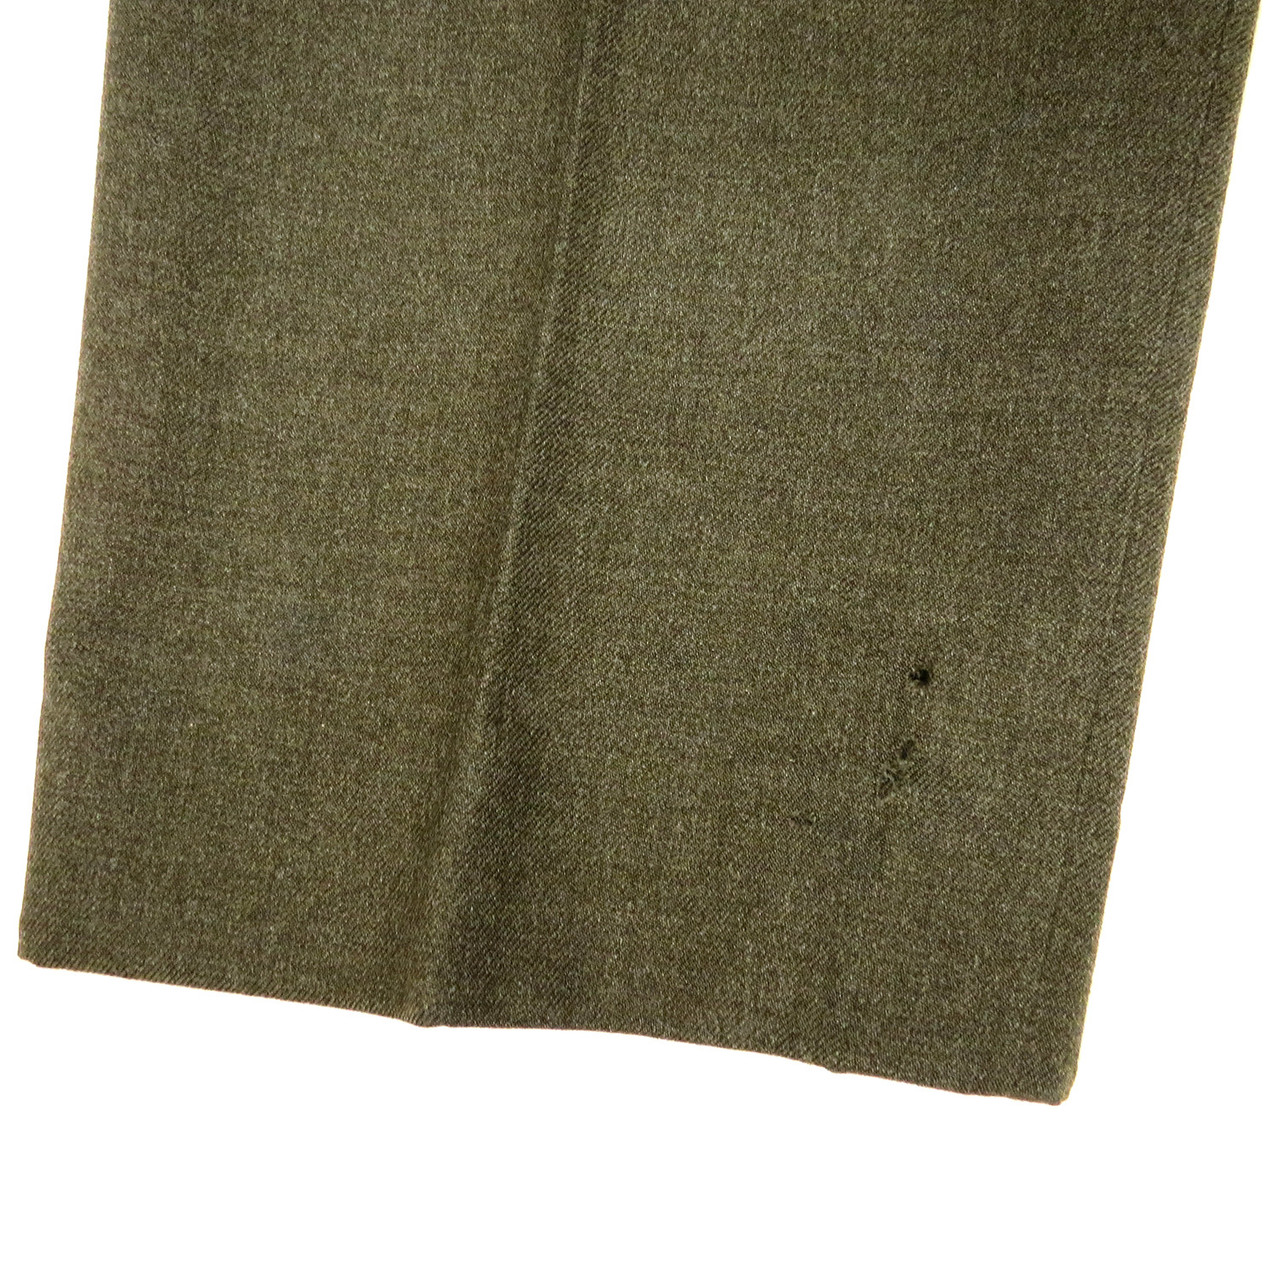 M45 Trousers